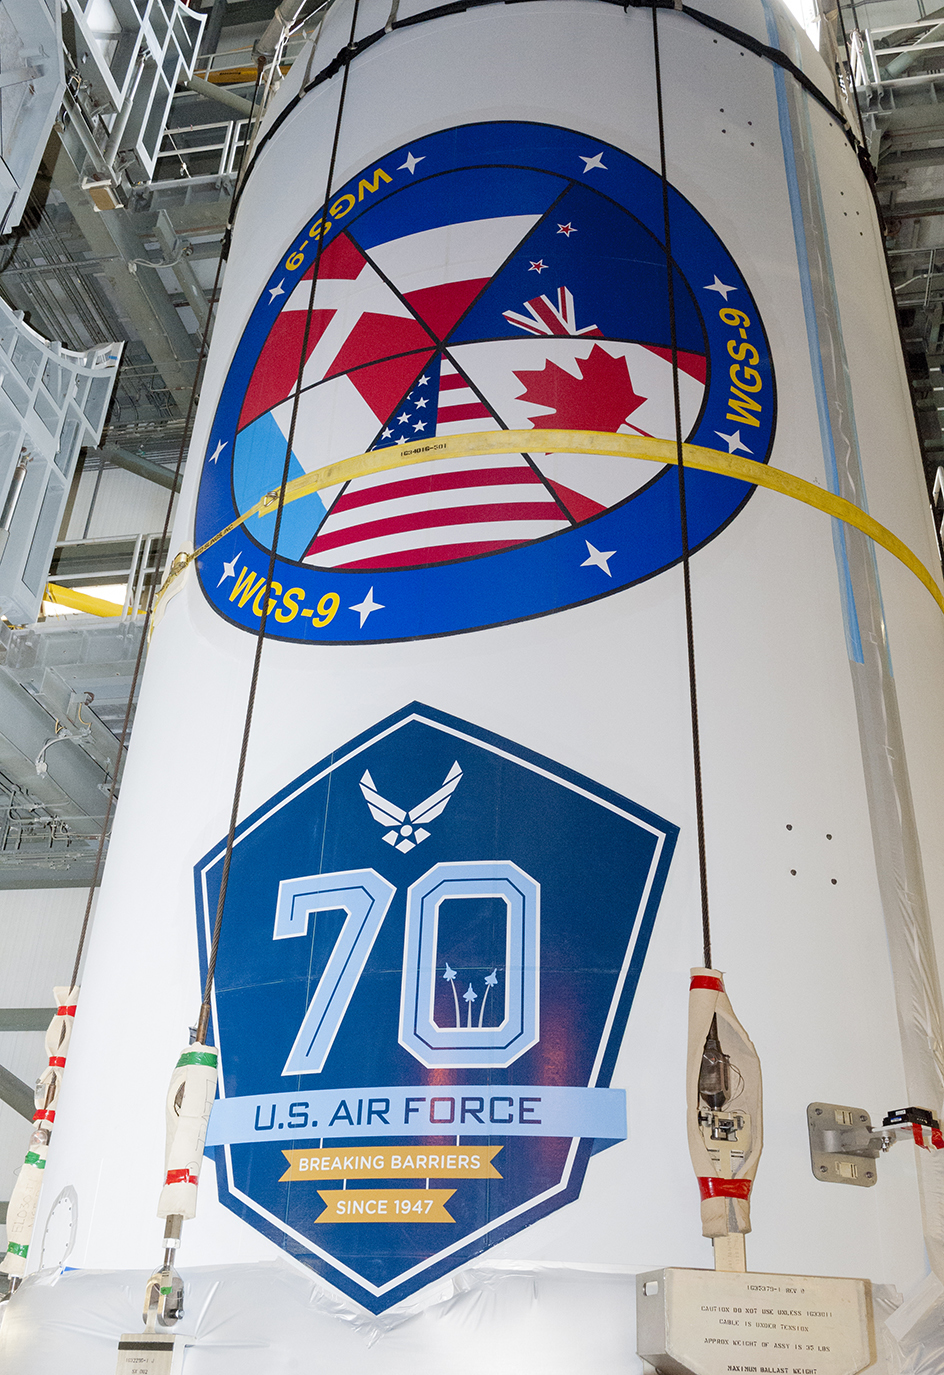 The WGS-0 constellation satellite displays a crest featuring the flags of the partner nations (clockwise from the bottom): the United States, Luxembourg, Denmark, The Netherlands, New Zealand and Canada. PHOTO: PHOTO: © United Launch Alliance